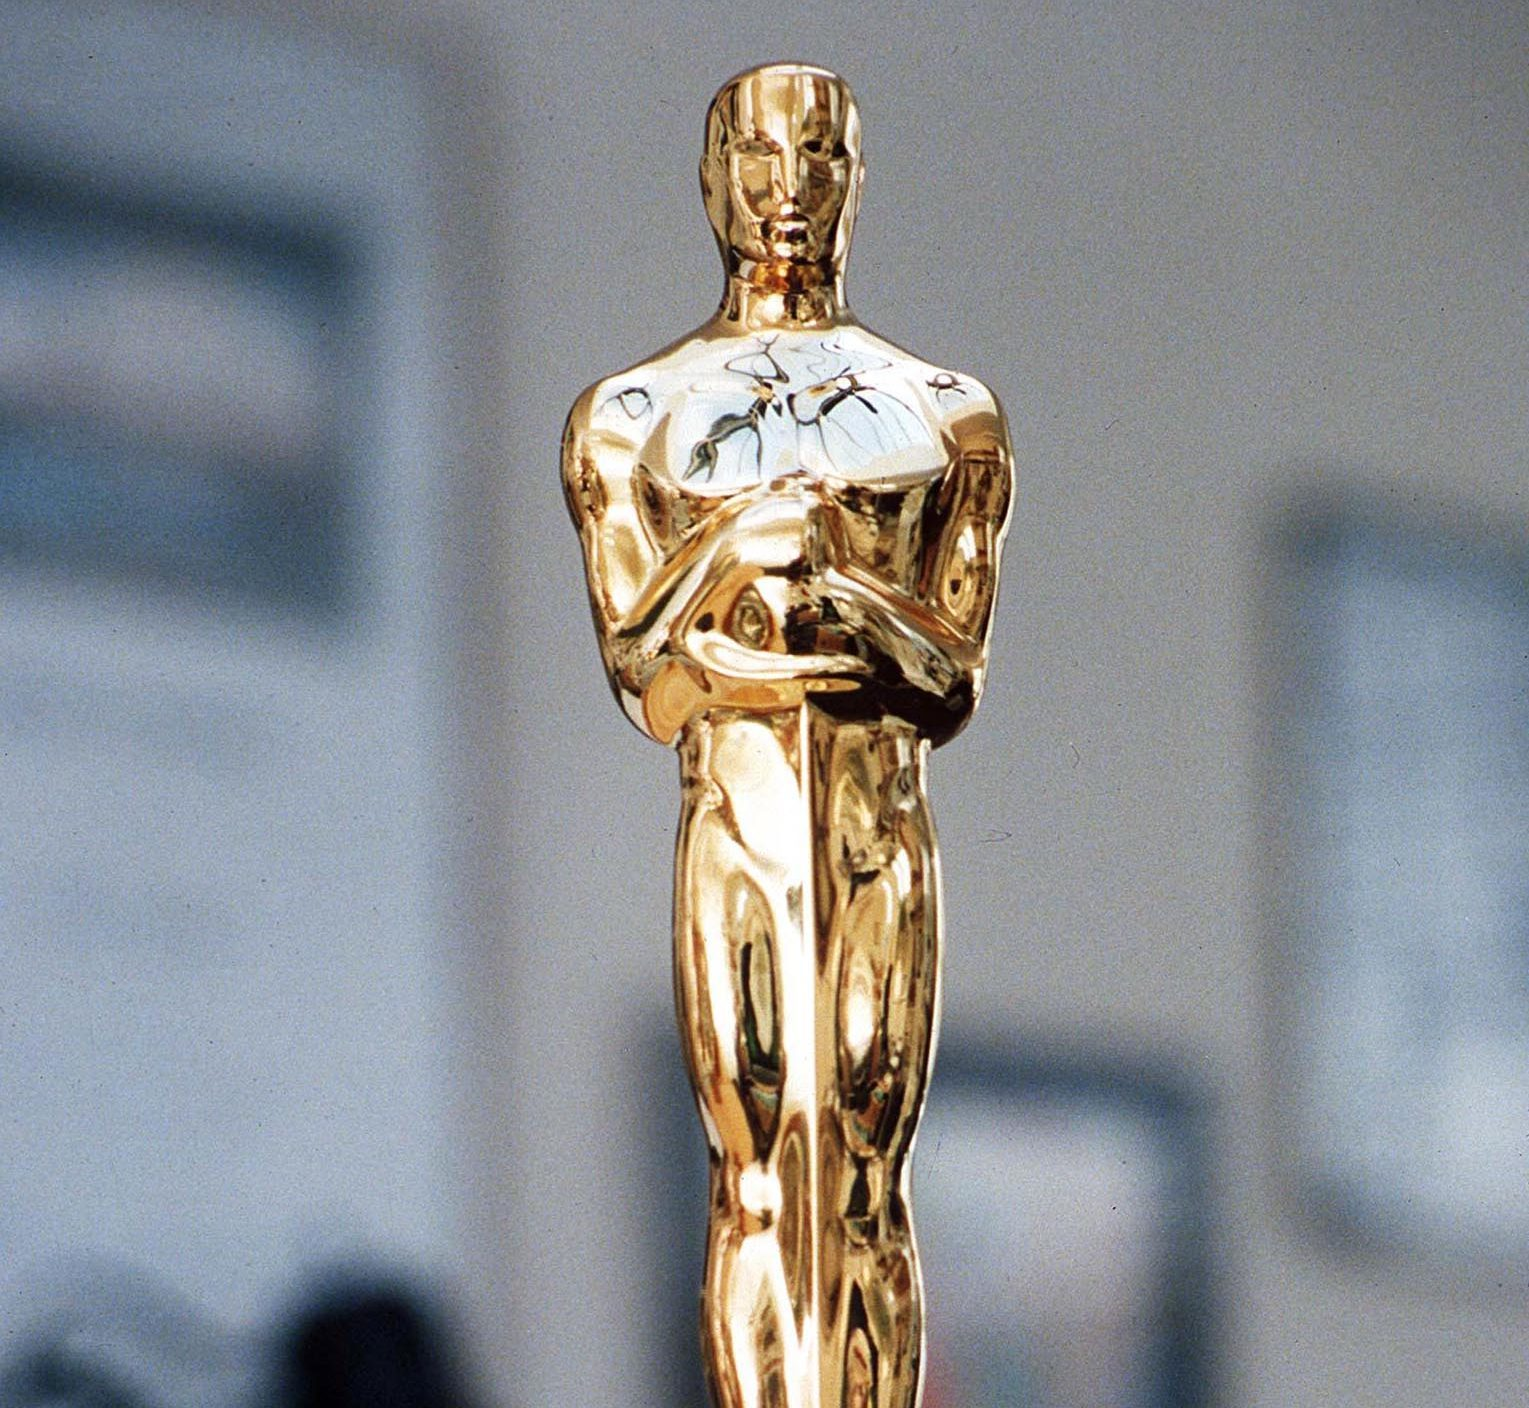 What You Probably Never Realized About Award Show Trophies